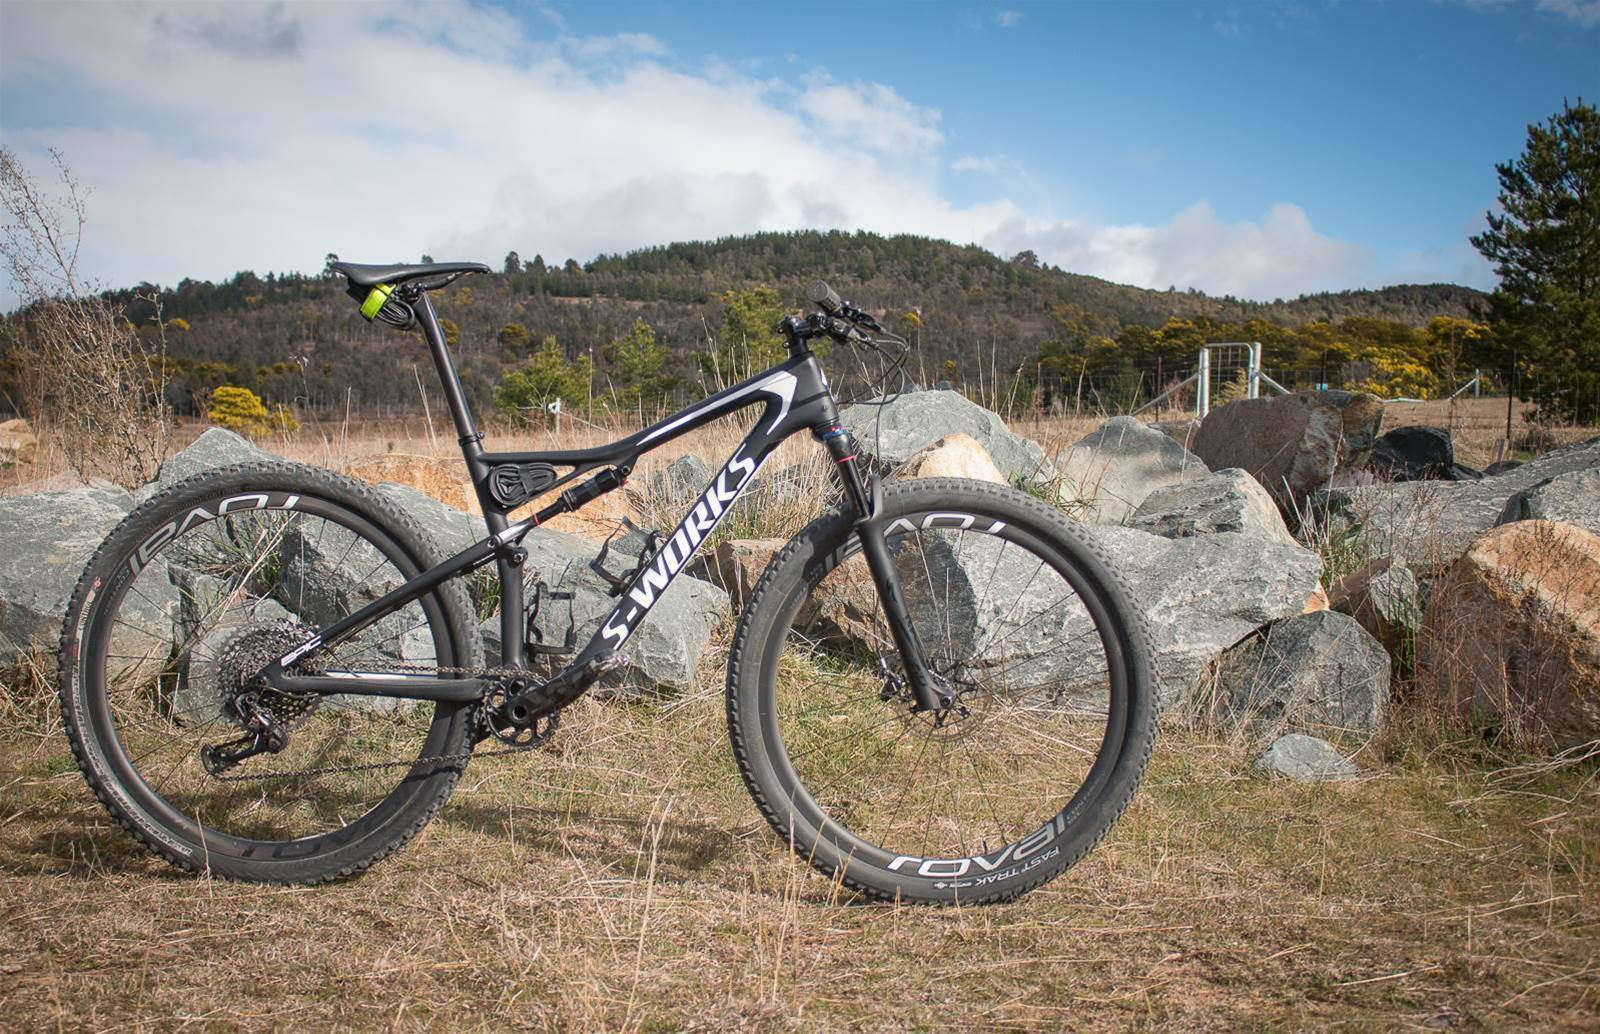 Bike Check: Garry James' 2018 Specialized Epic S-Works